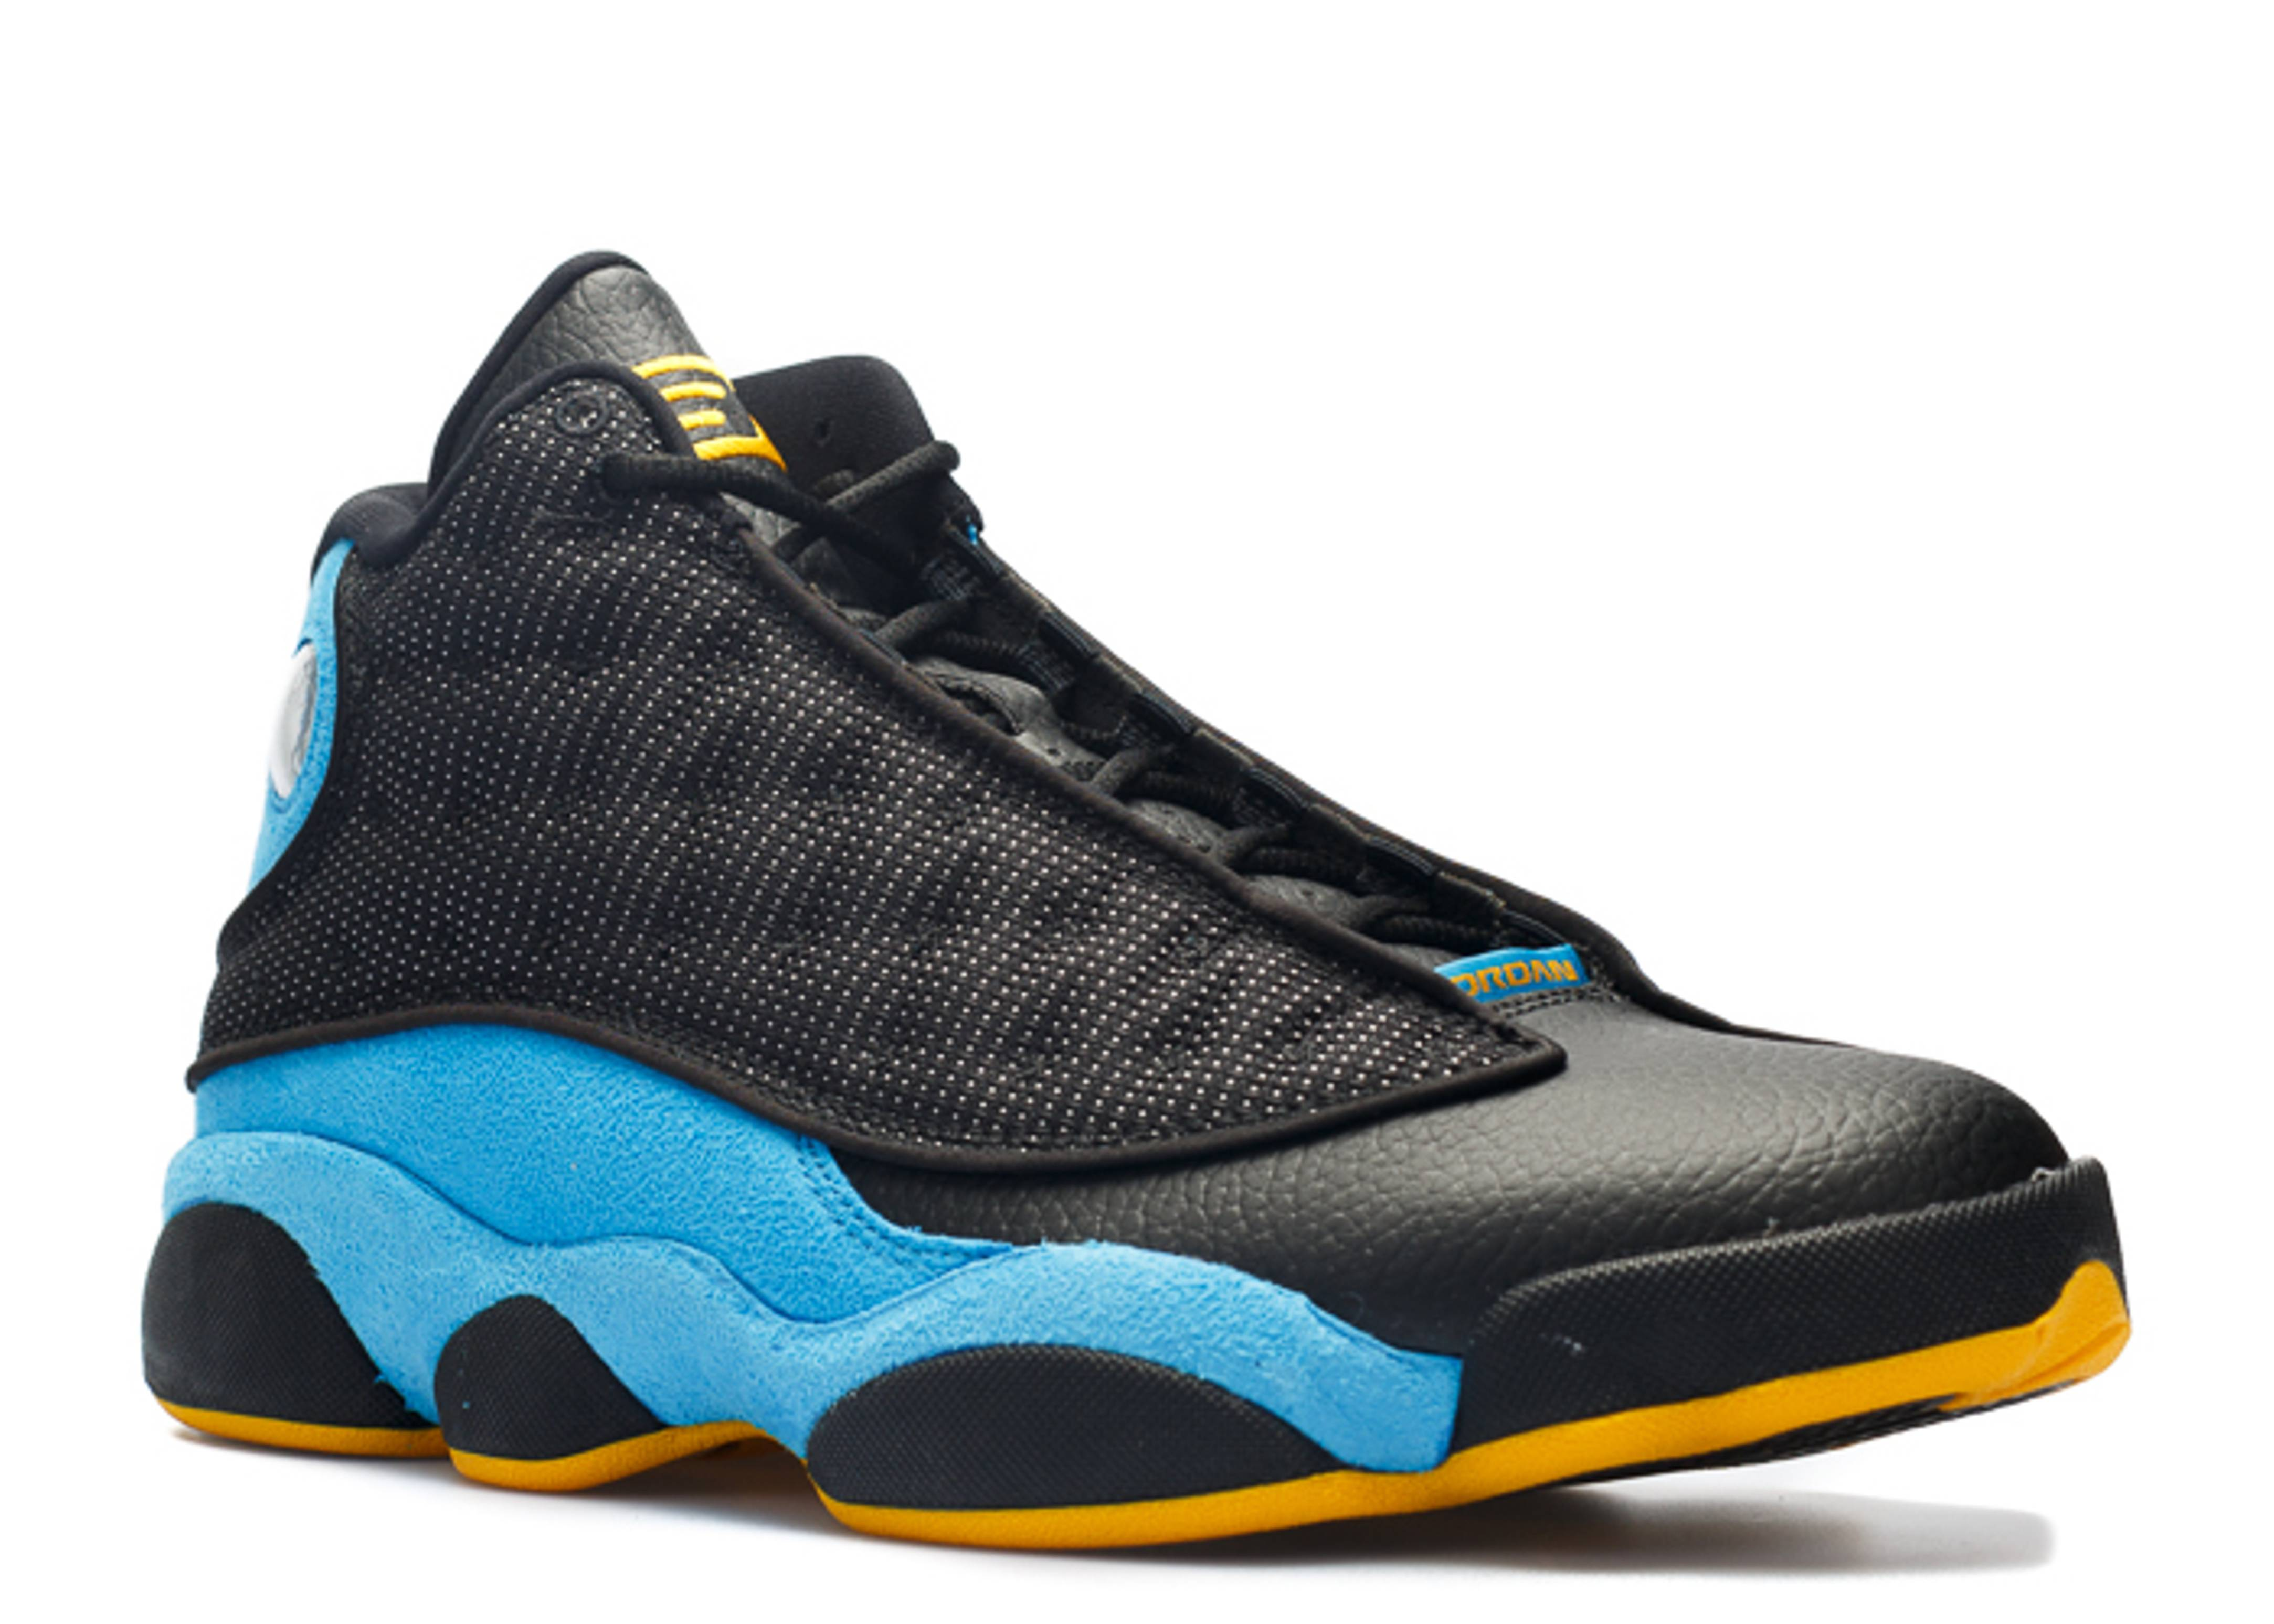 da3bbc43fa86 Buy jordan cp 1  Free shipping for worldwide!OFF33% The Largest ...